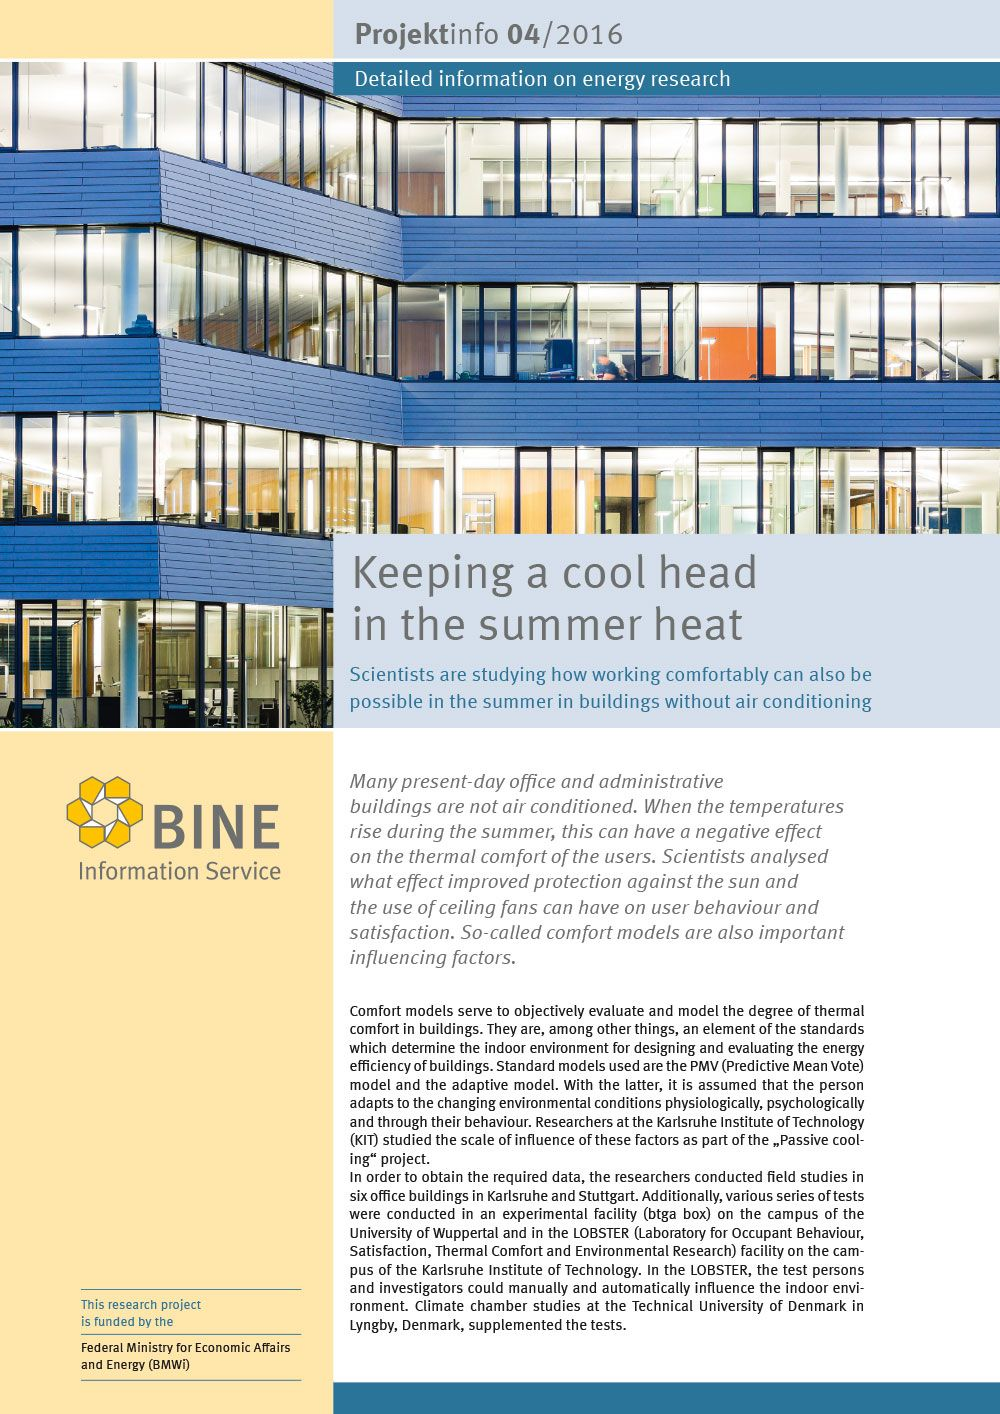 """Many existing office and administrative buildings are not air conditioned. This makes it all the more difficult to concentrate on work with increasing temperatures. Scientists have therefore analysed which measures can be used to improve user satisfaction. The BINE-Projektinfo brochure """"Keeping a cool head in the summer heat"""" (04/2016) presents investigations and models to assess the thermal comfort."""